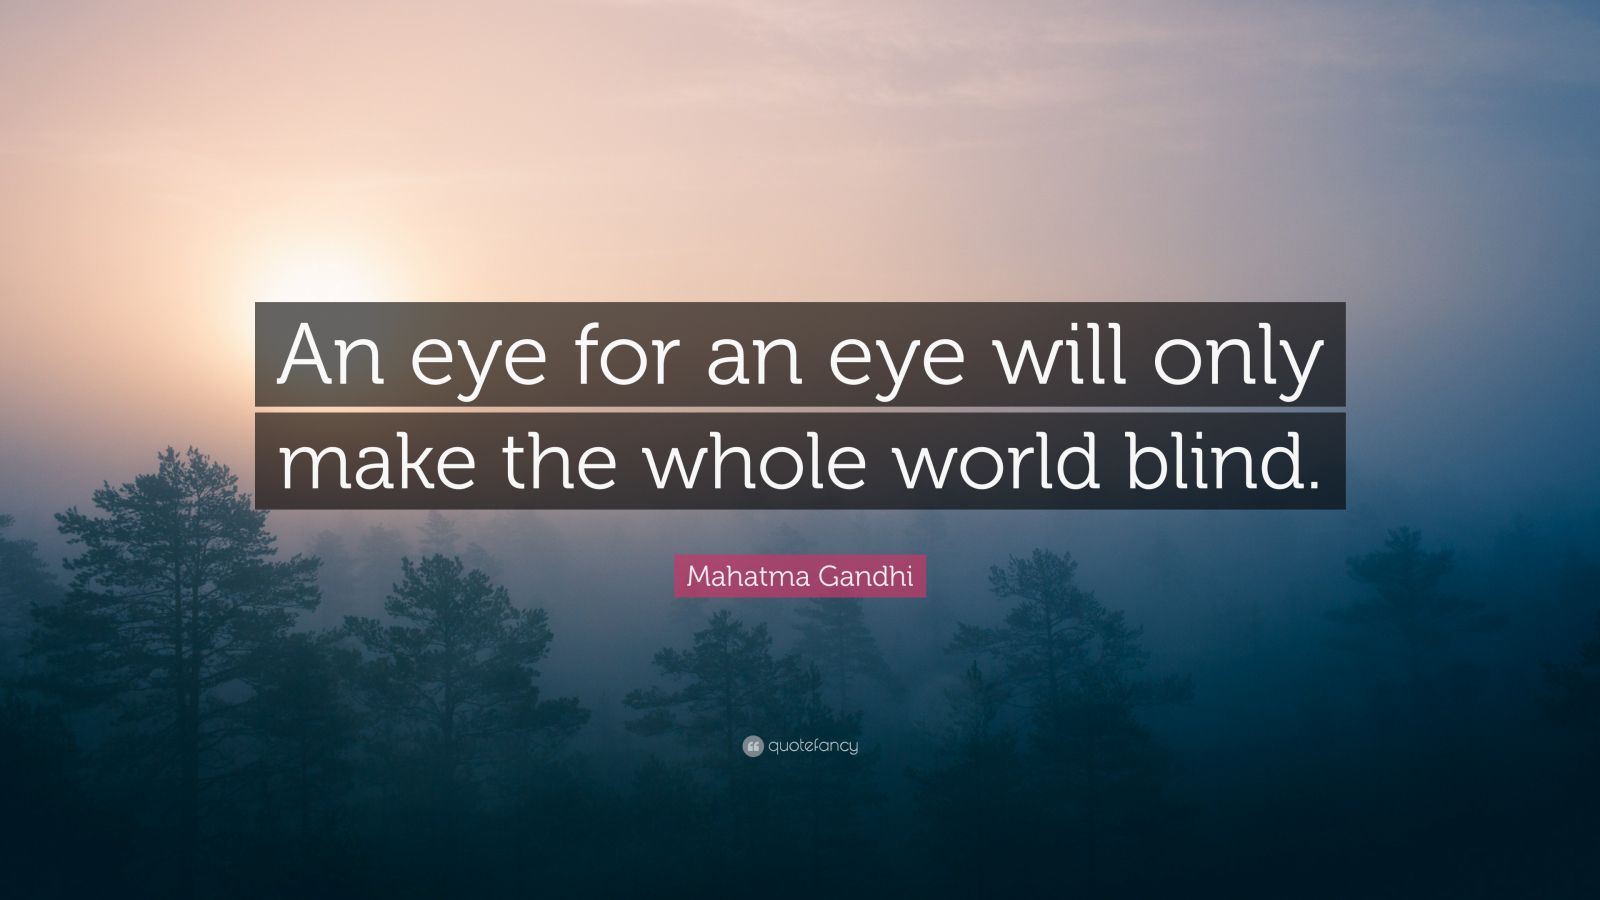 An Eye For An Eye Makes The Whole World Blind Meaning